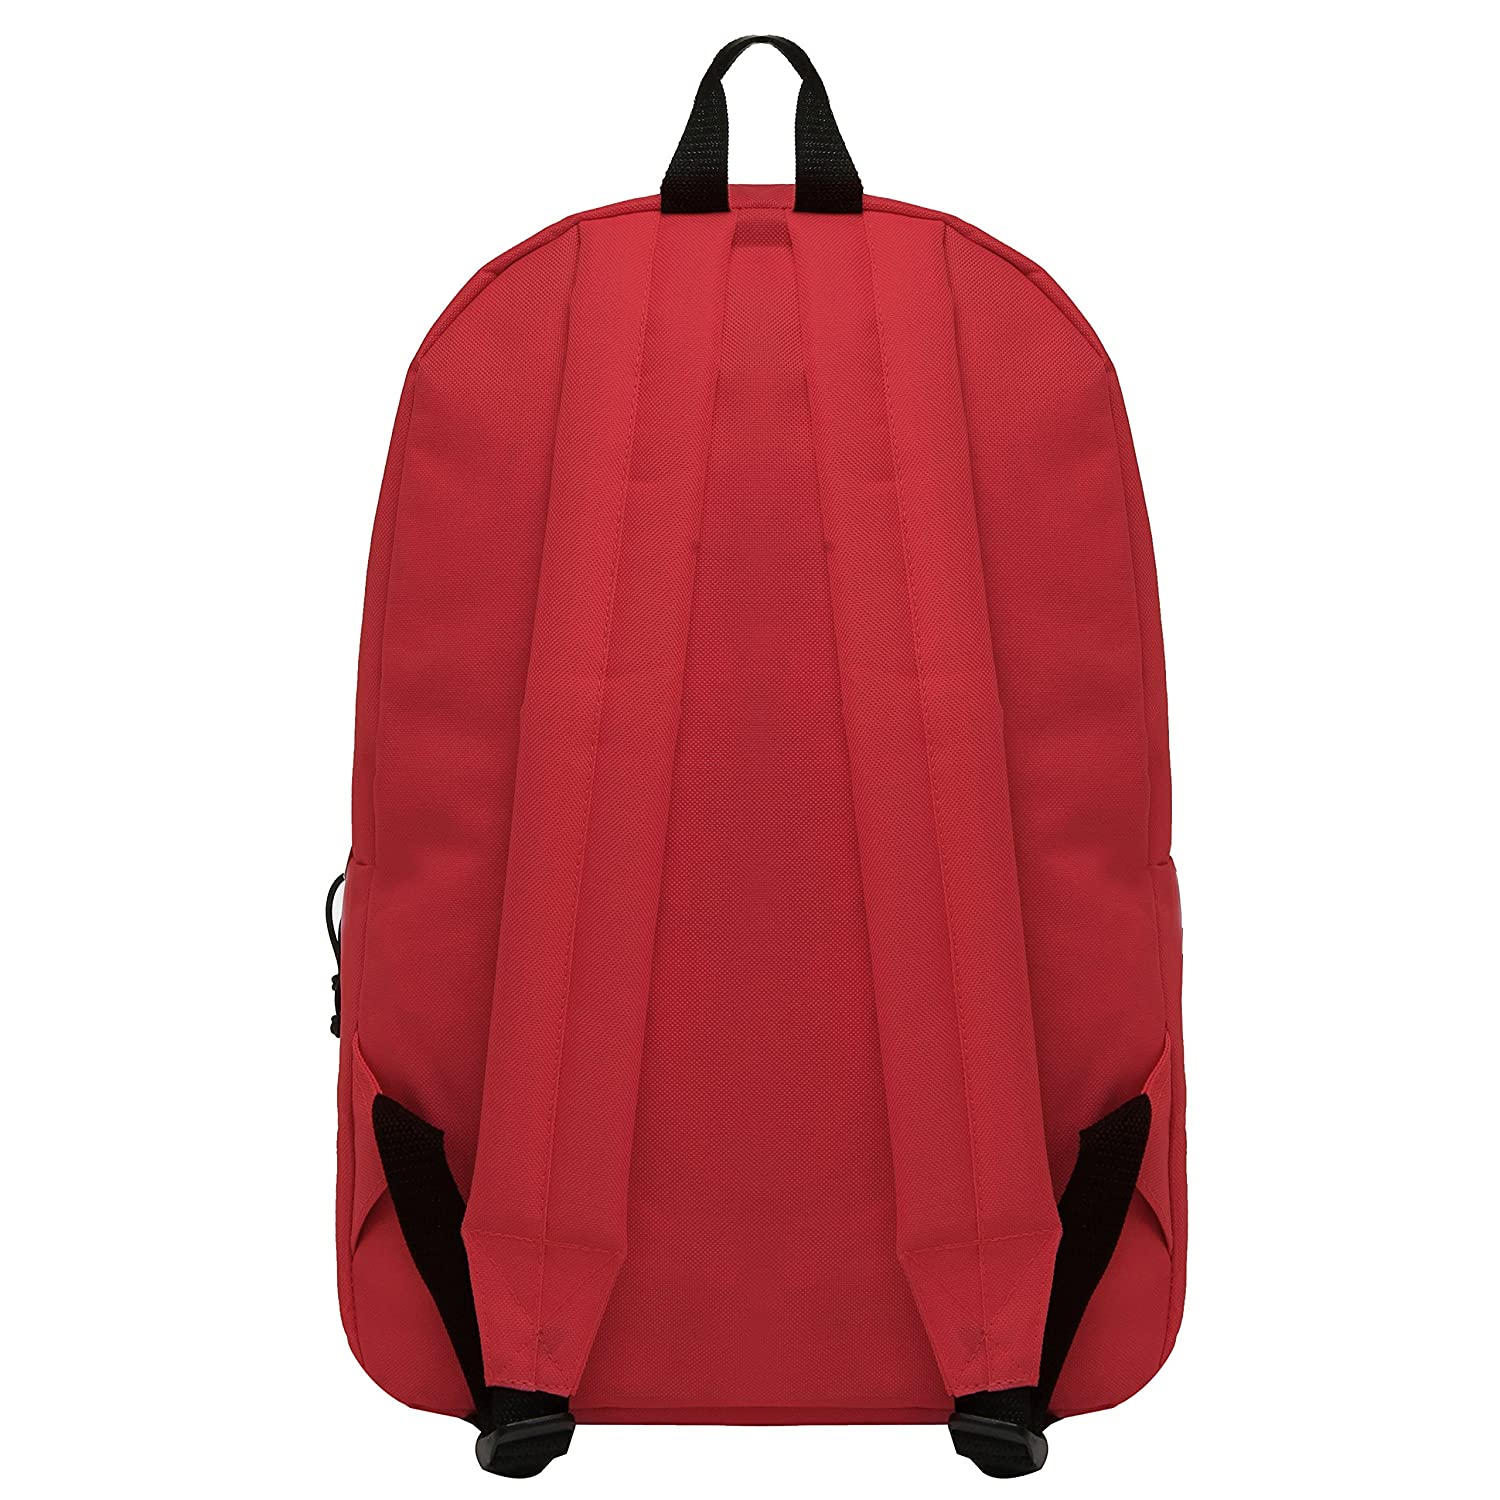 wholesale 16 5 inch backpacks case of 24